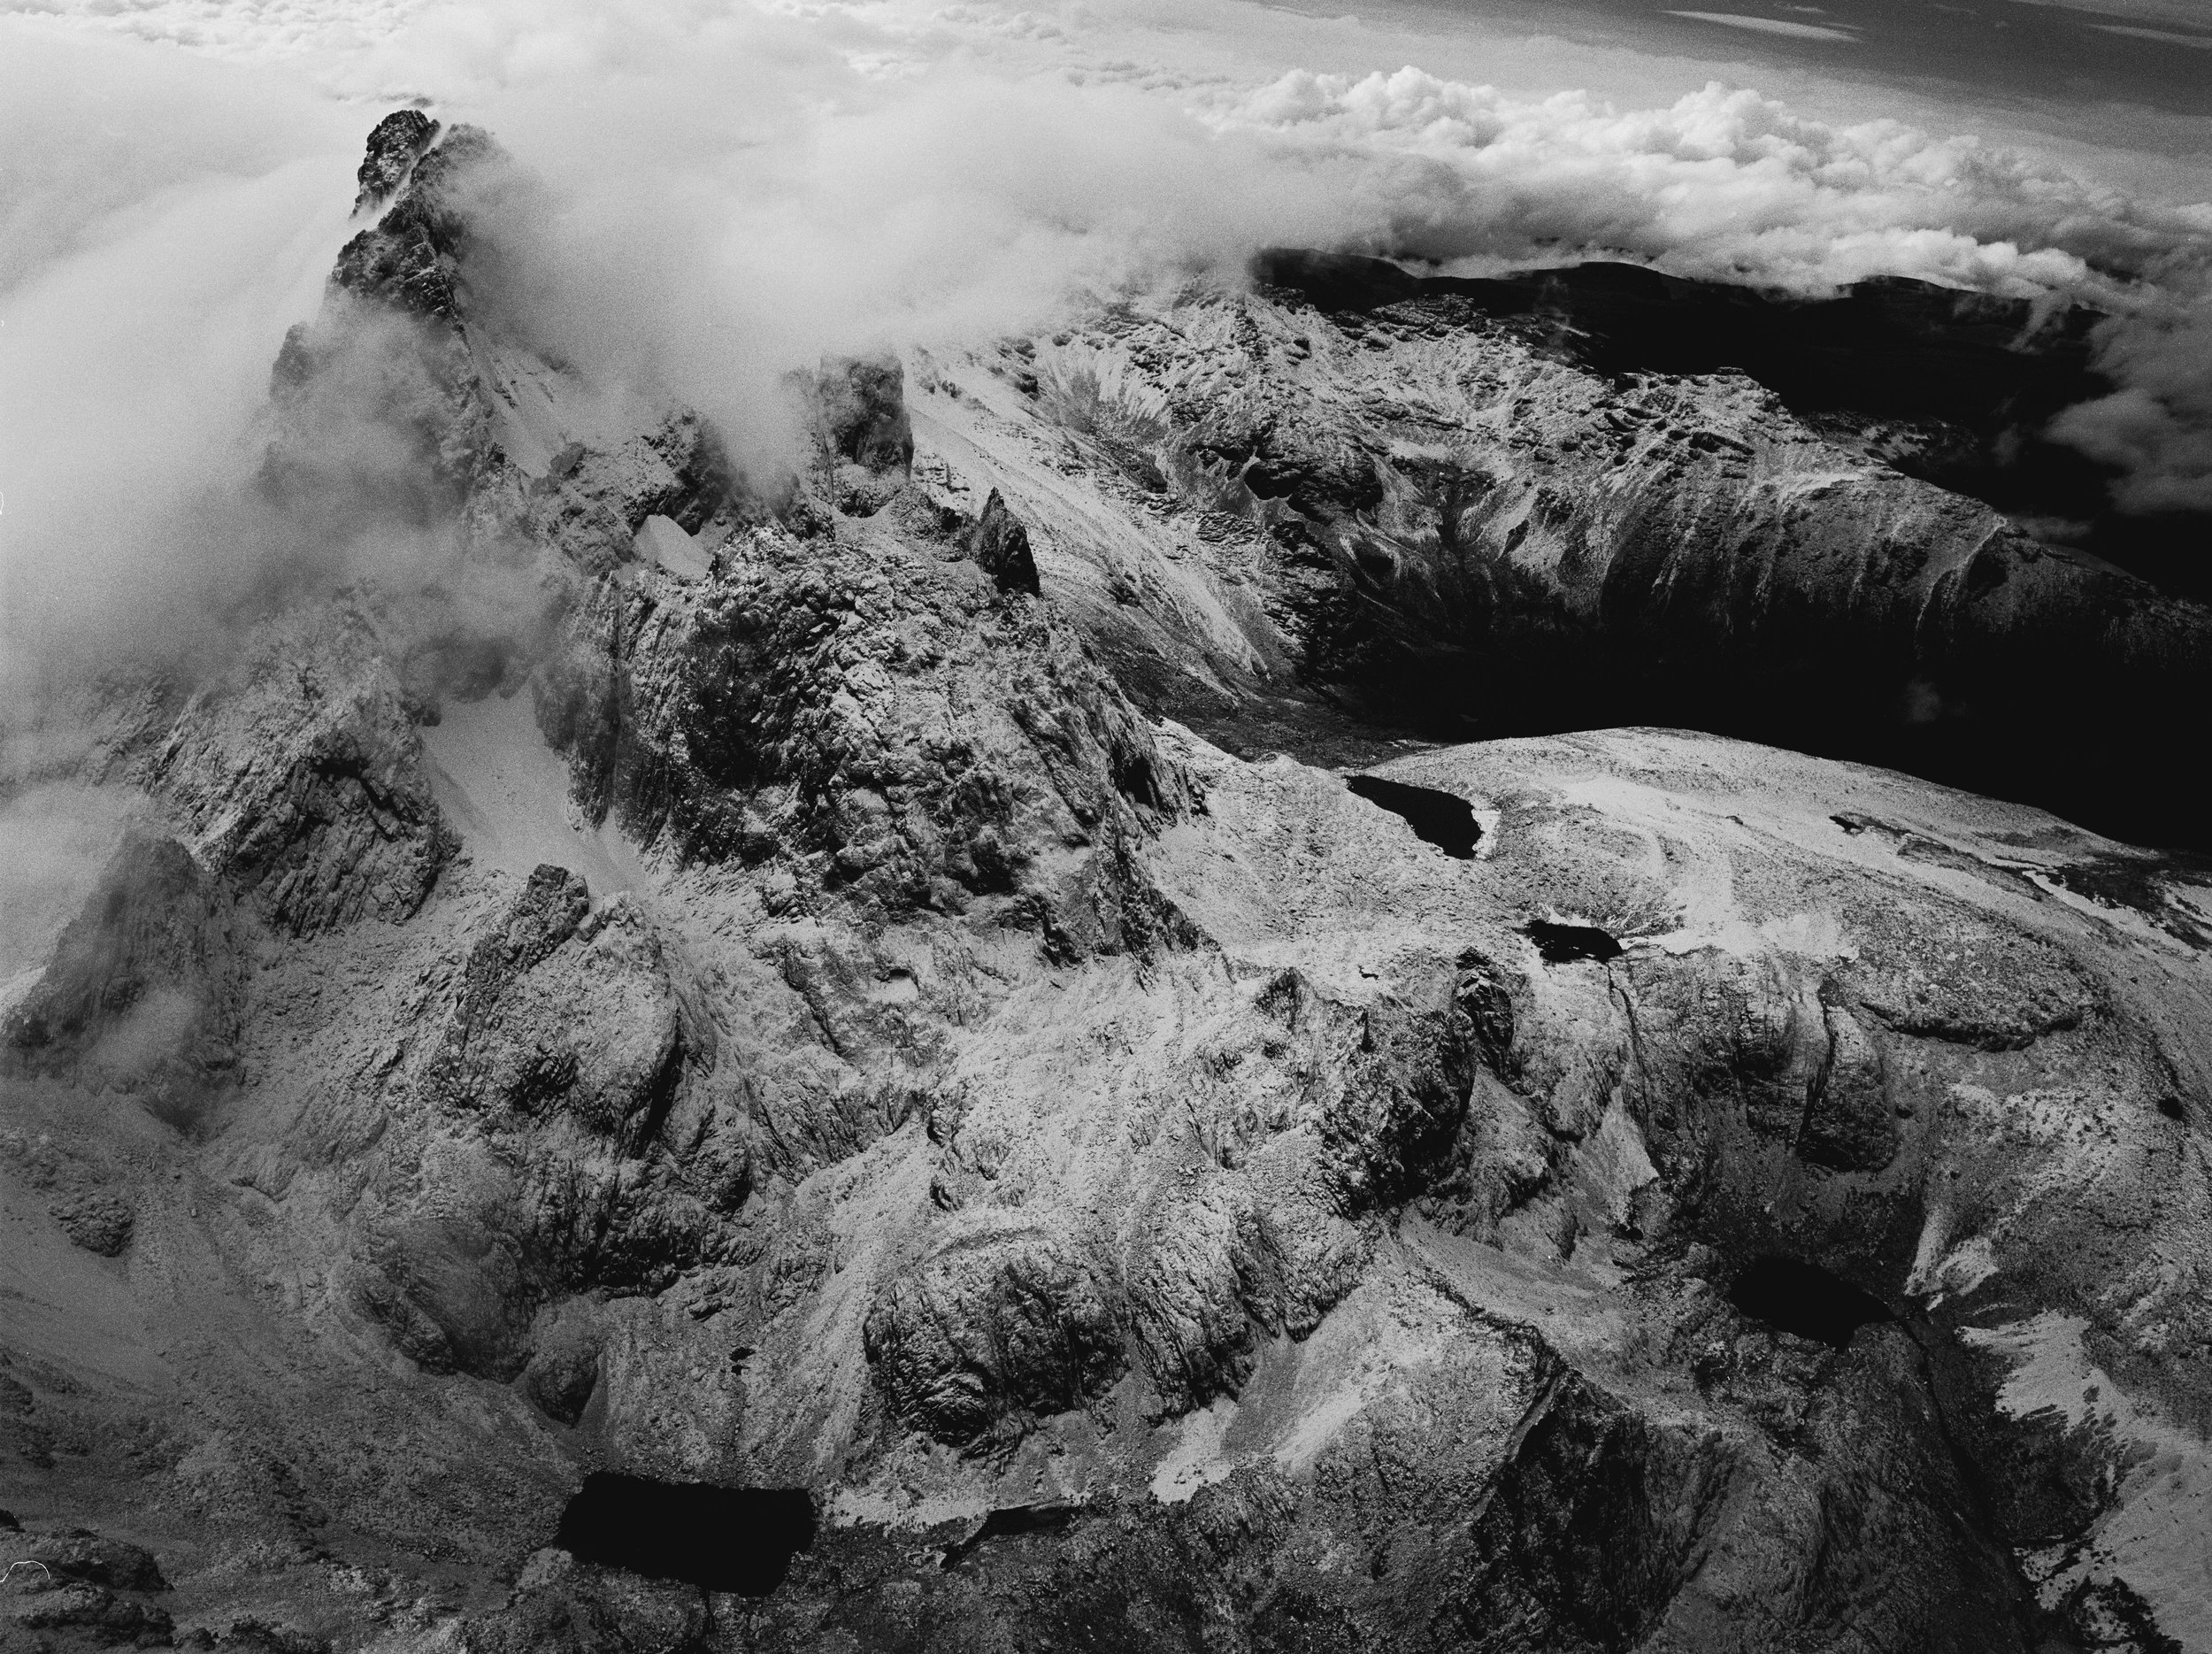 Africa's majestic second highest peak, contains the remnants of fast disappearing snowfields, Mount Kenya, 2004 © Alex Majoli | Magnum Photos